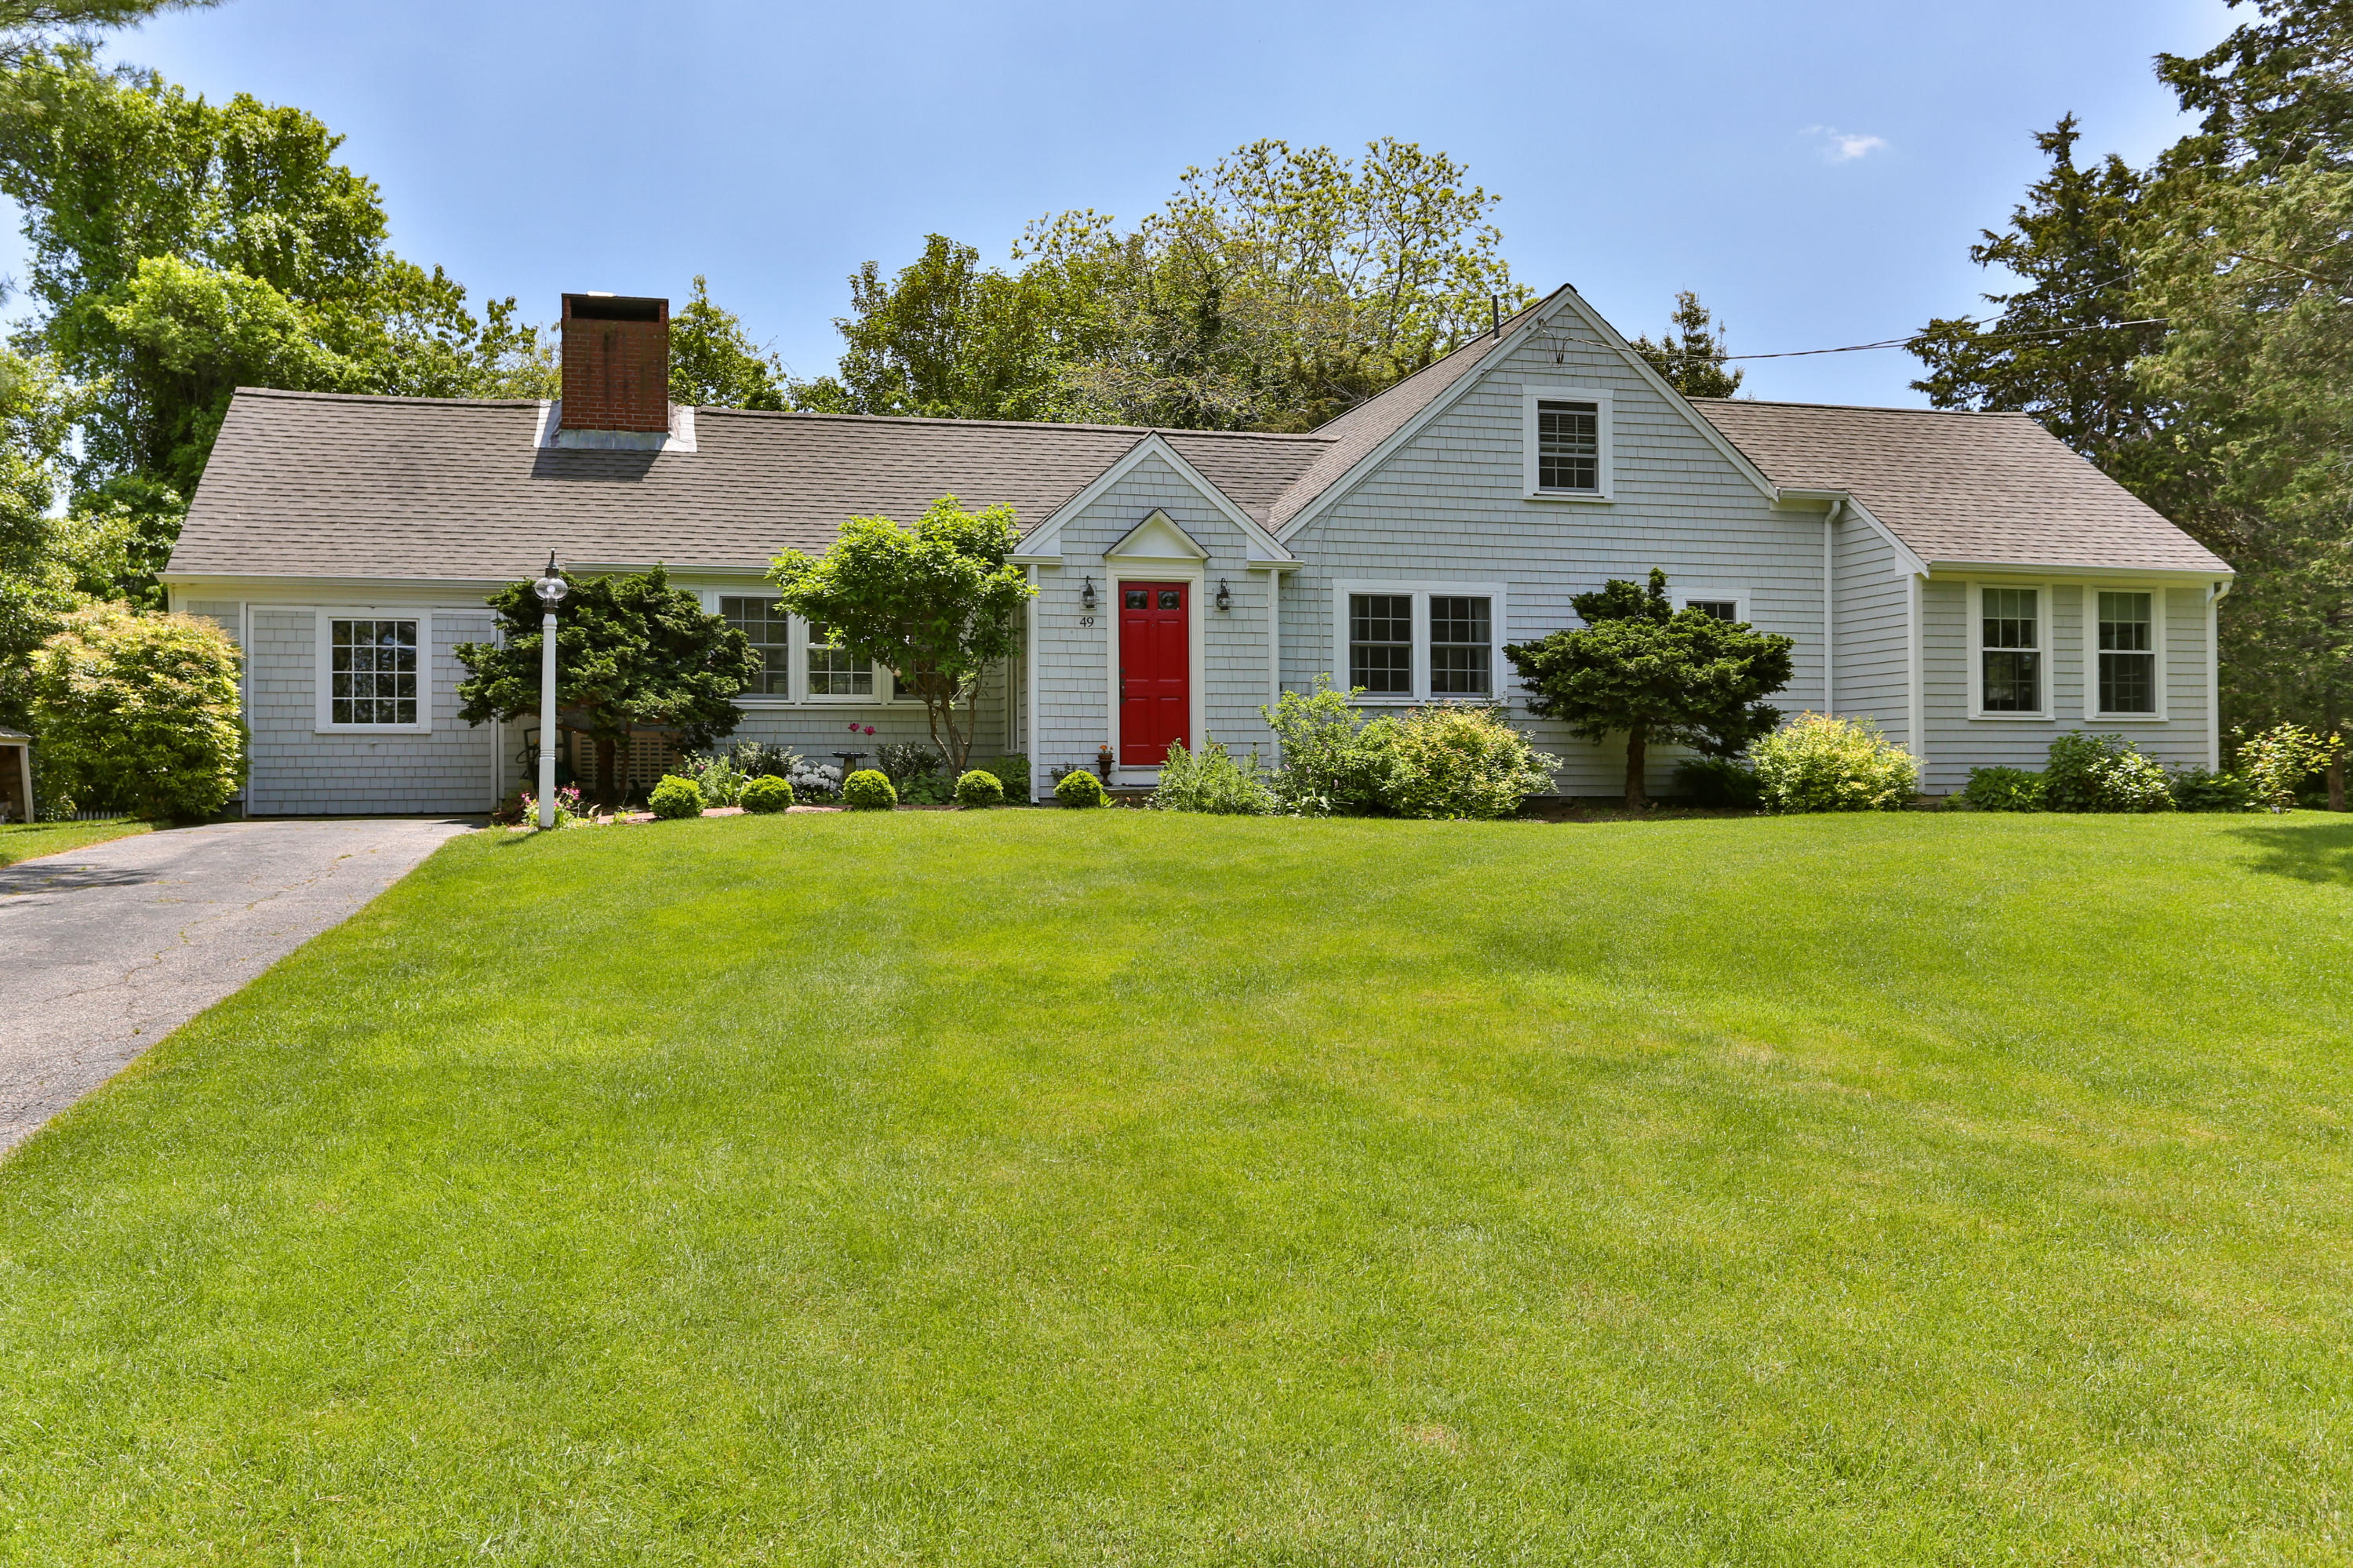 49-indian-hill-road-barnstable